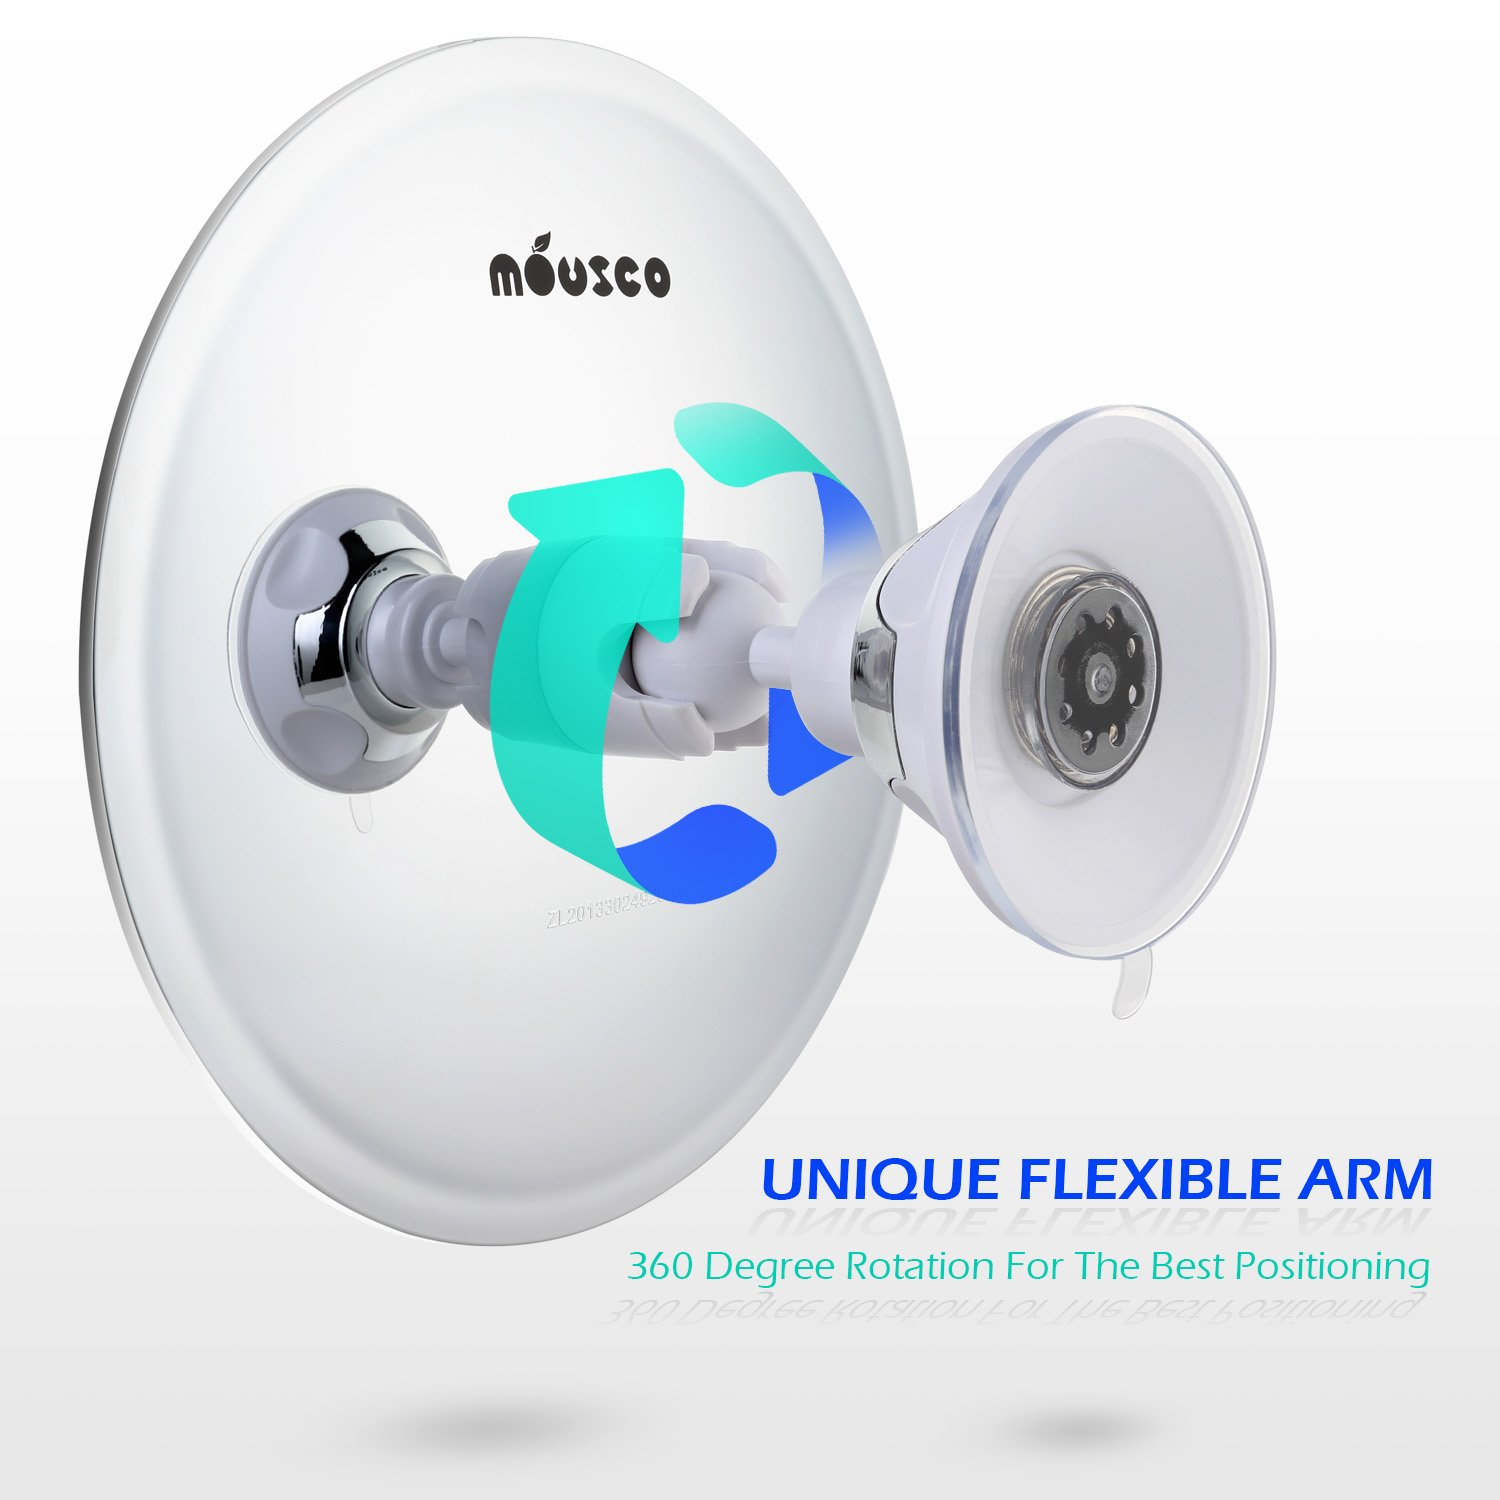 5.75 Inch Flexible Rotation Arm and Powerful Locking Suction Cup Mount Chrome Round Miusco Fogless Shower Shaving Mirror With Suction Cup Razor Holder